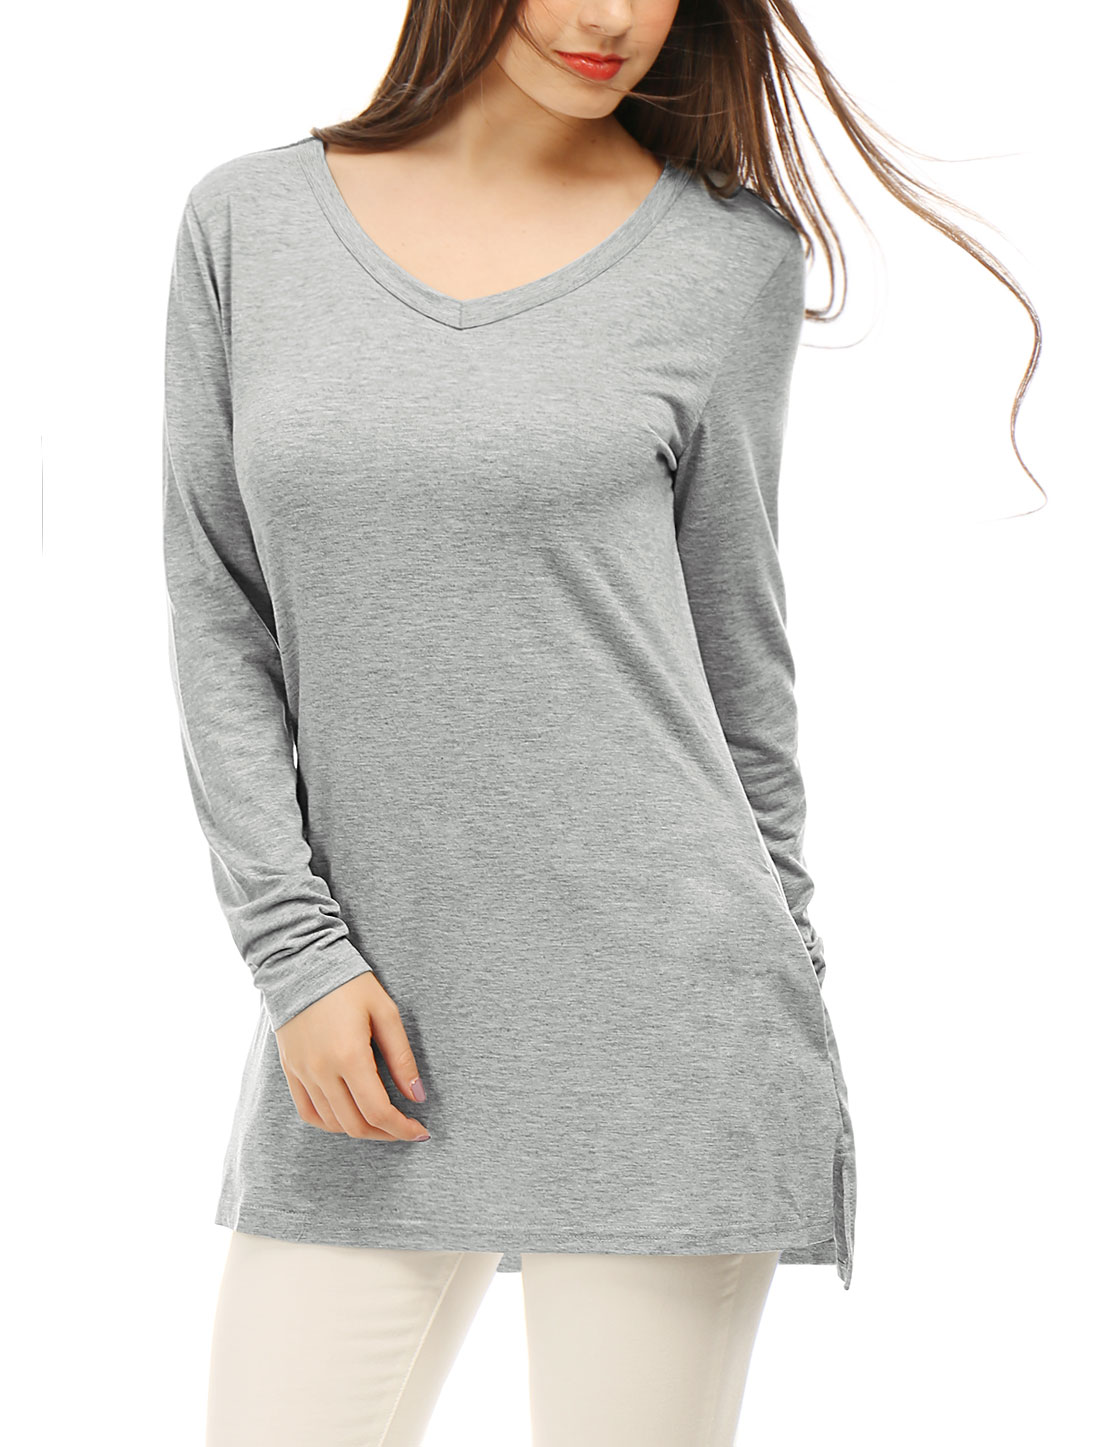 Woman V Neck Long Sleeves Side Split Tunic Top w Pockets Light Gray S